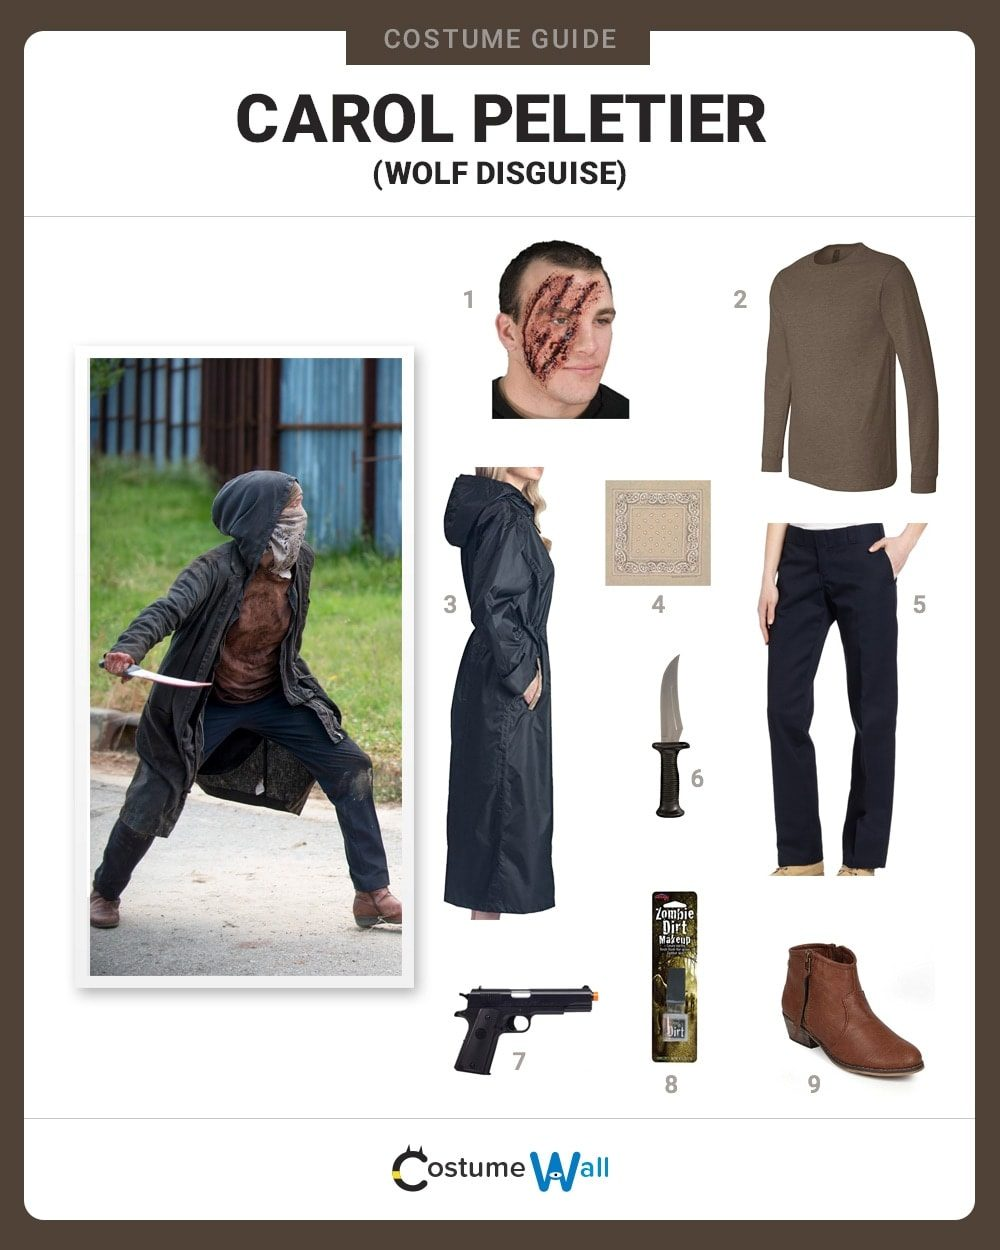 Carol Peletier (Wolf) Costume Guide